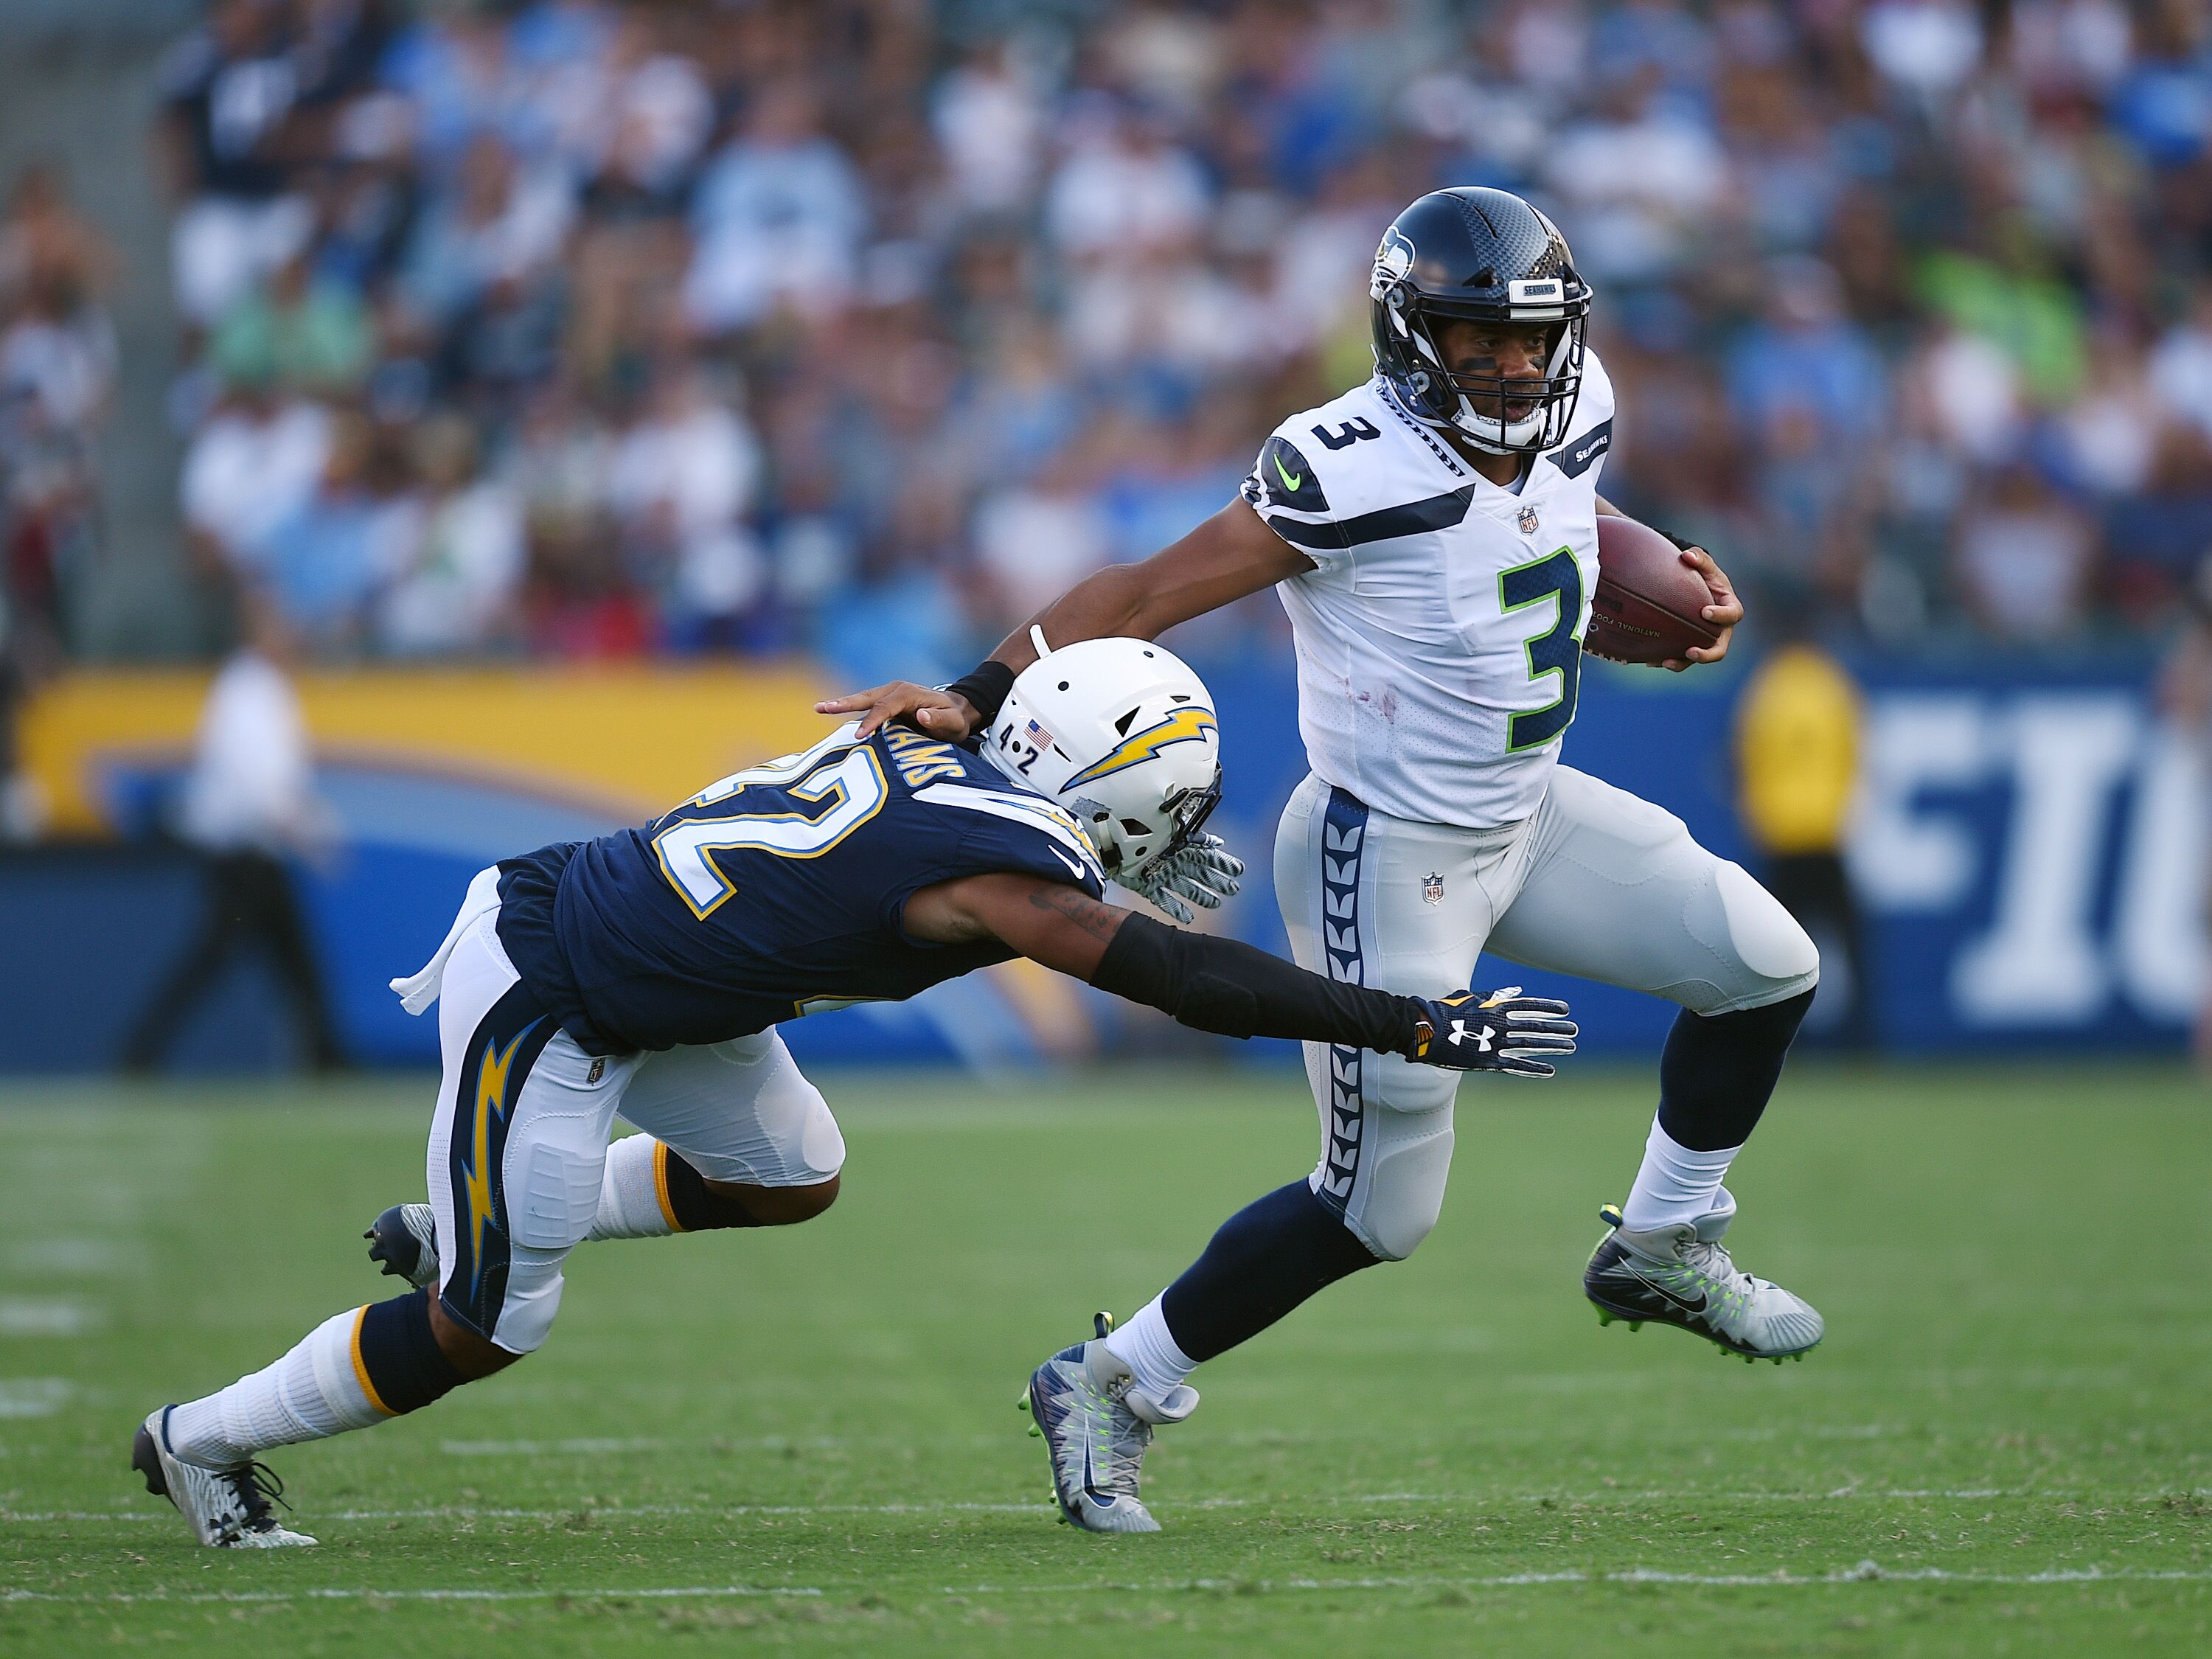 831169796-seattle-seahawks-v-los-angeles-chargers.jpg